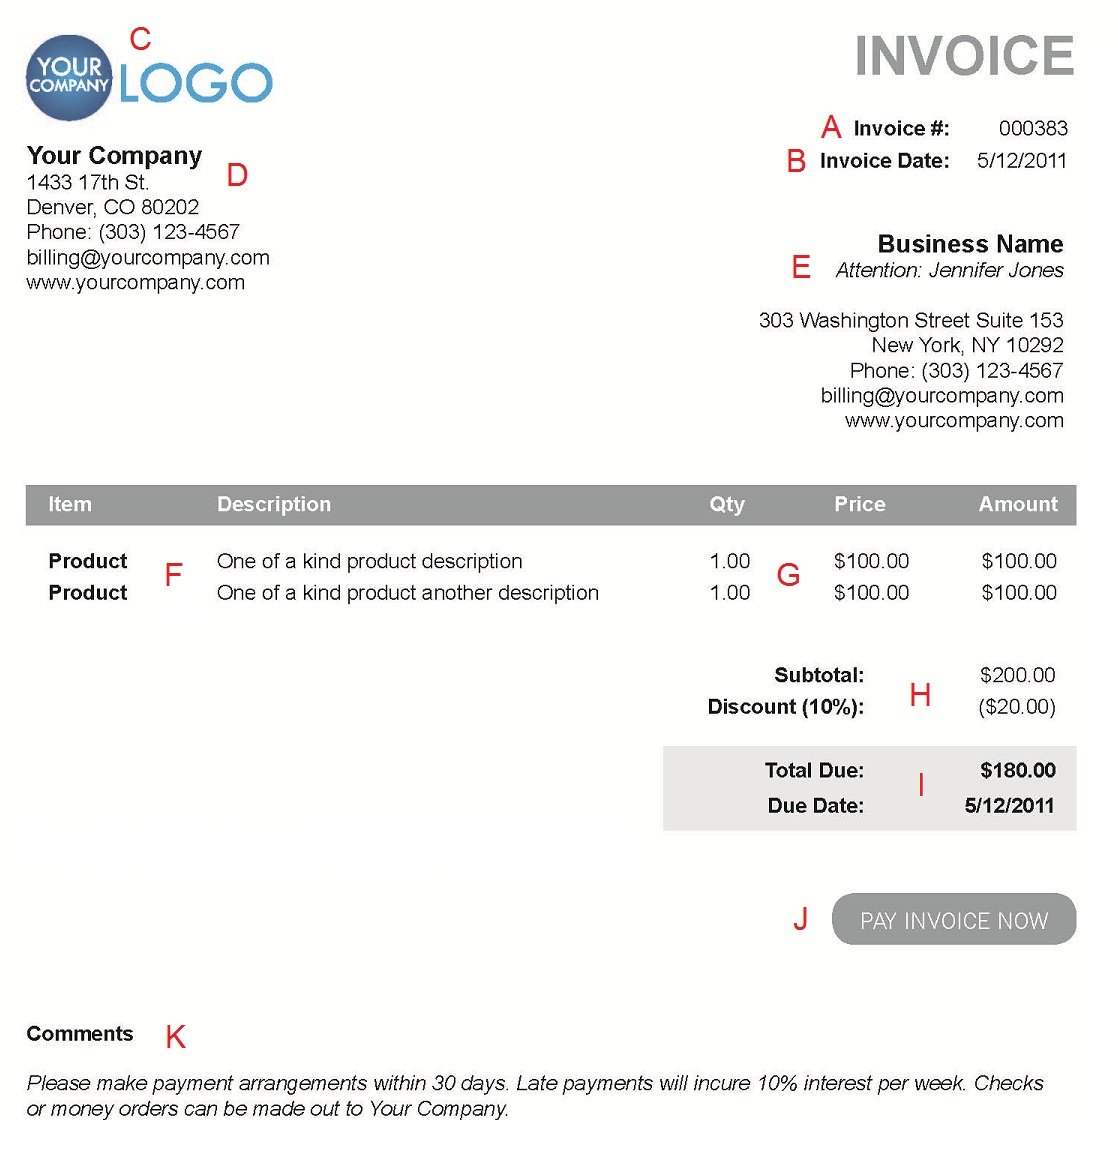 Thassosus  Mesmerizing The  Different Sections Of An Electronic Payment Invoice With Magnificent A  With Astounding Nebs Invoices Also Web Design Invoice Sample In Addition How Invoices Work And Dfas My Invoice As Well As Blank Proforma Invoice Additionally Painting Invoice Sample From Paysimplecom With Thassosus  Magnificent The  Different Sections Of An Electronic Payment Invoice With Astounding A  And Mesmerizing Nebs Invoices Also Web Design Invoice Sample In Addition How Invoices Work From Paysimplecom